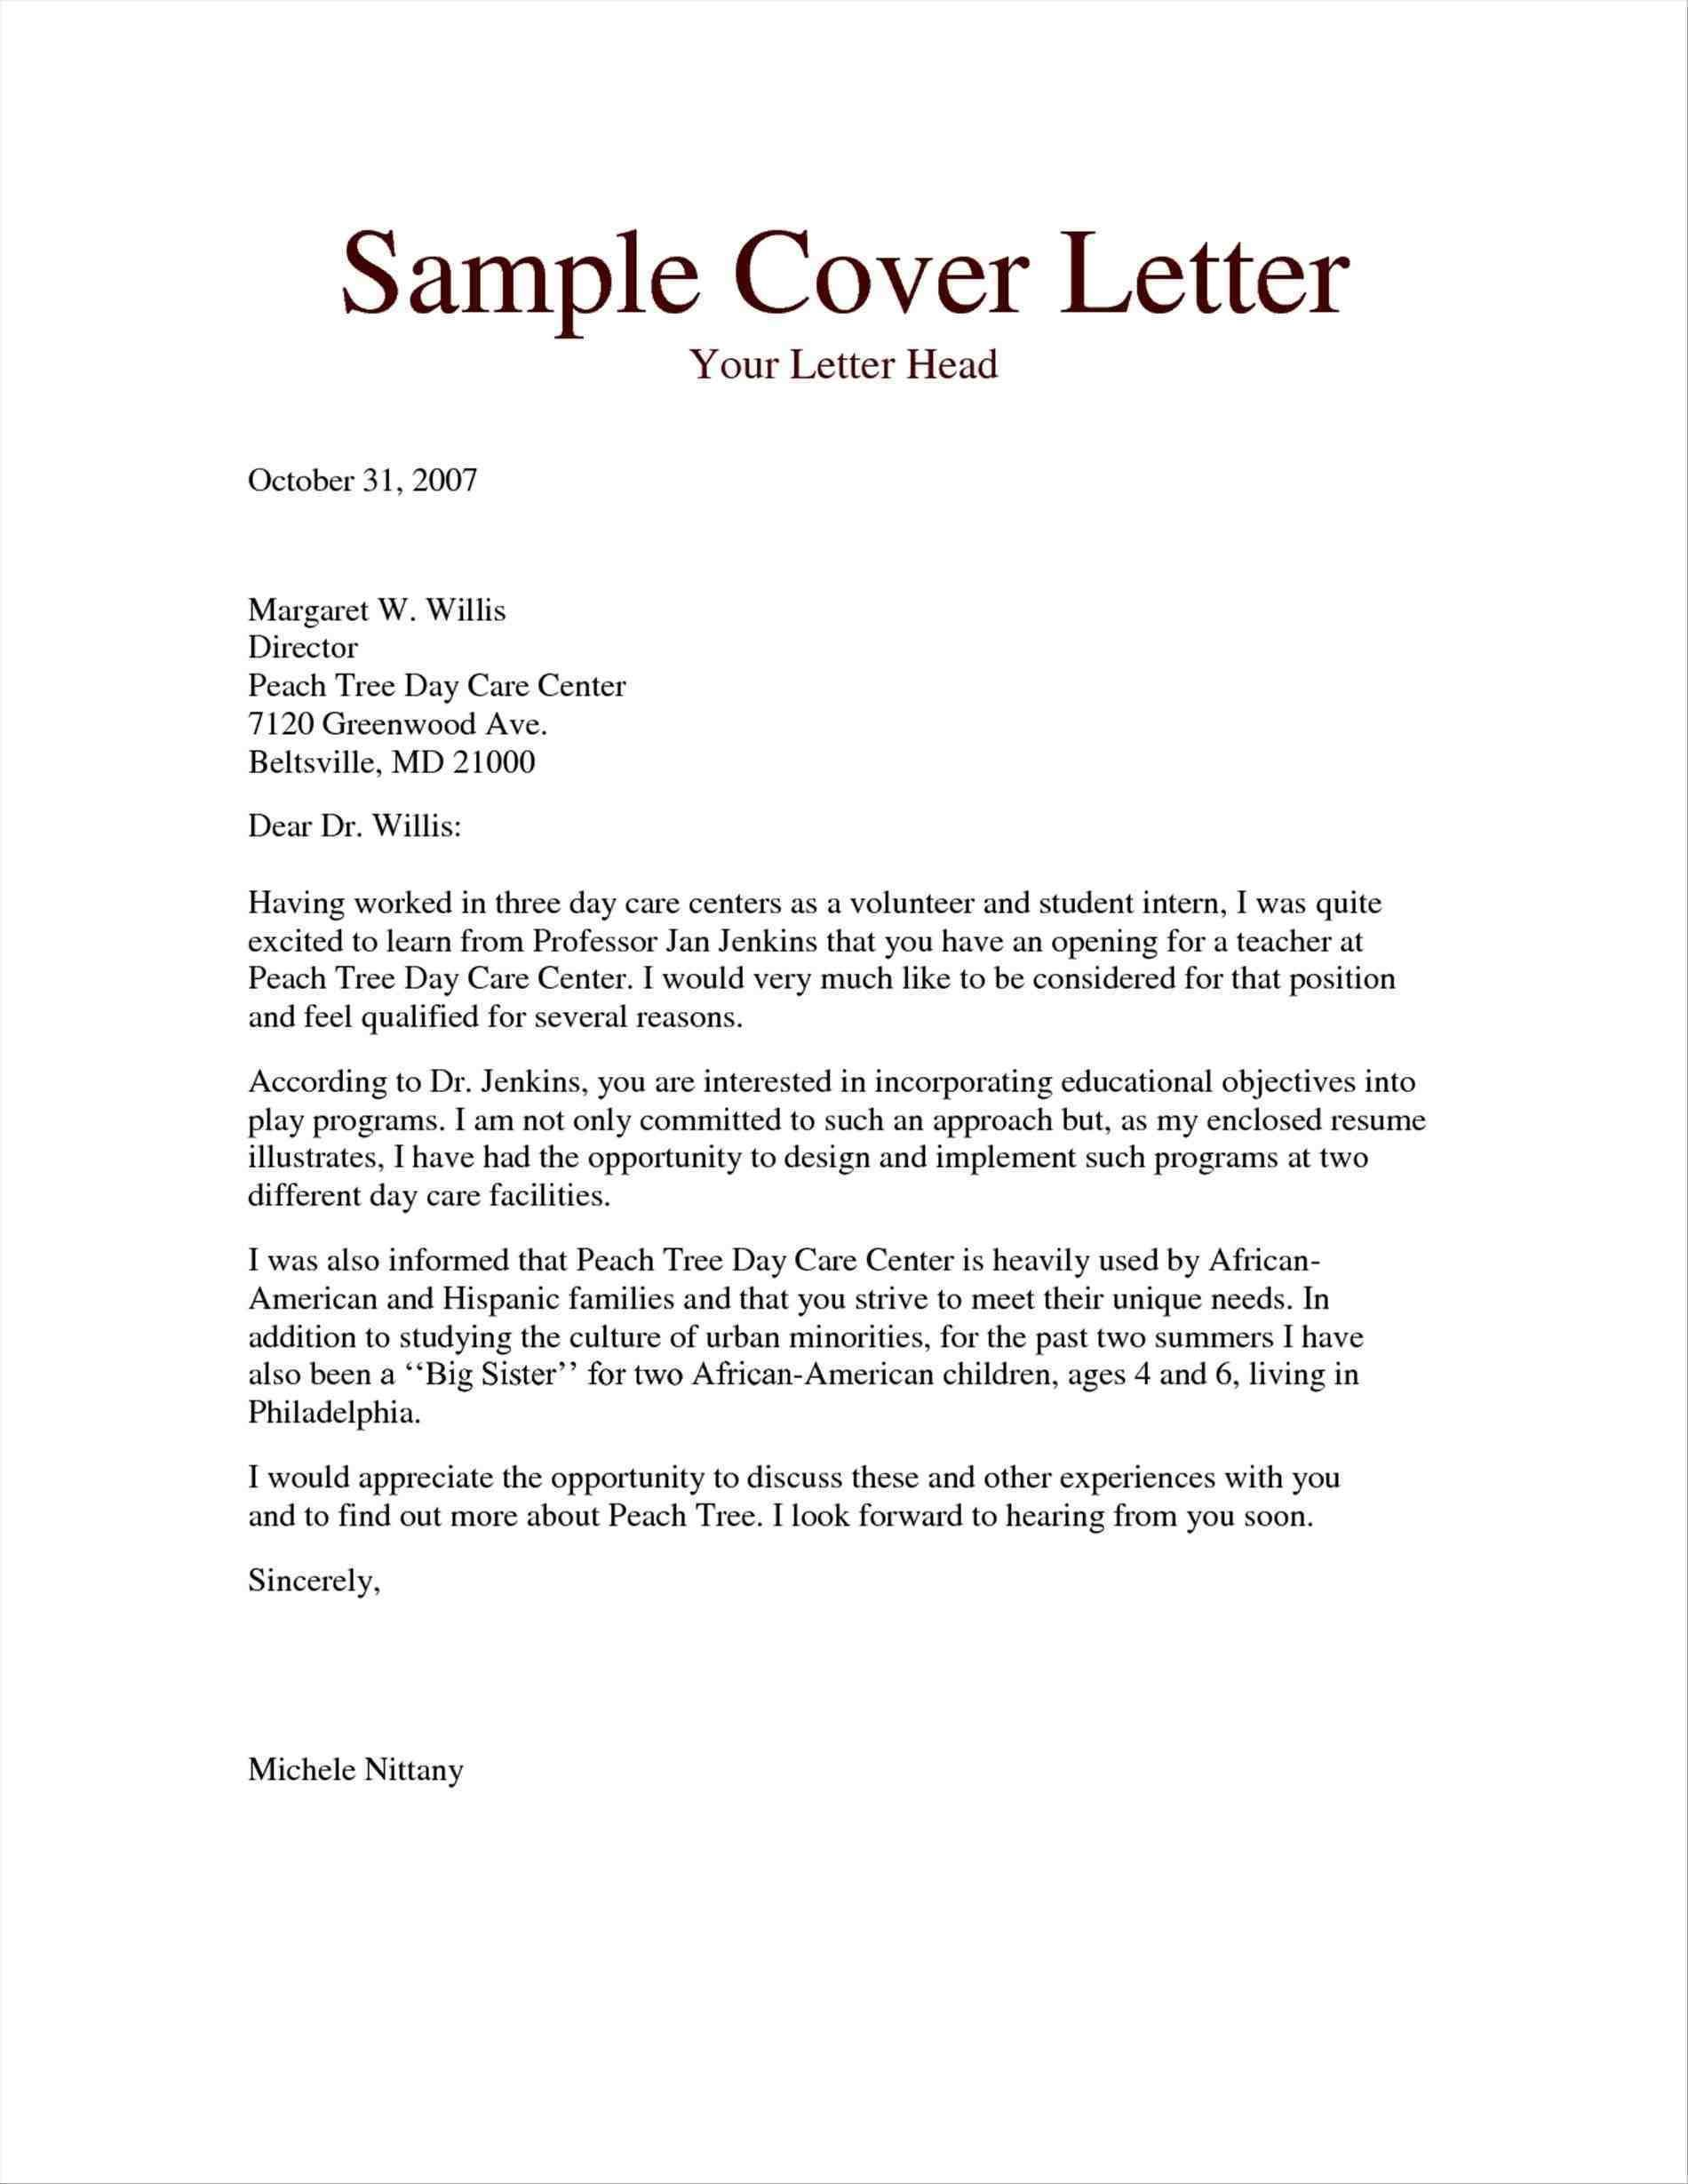 Free Cover Letter Samples from i.pinimg.com